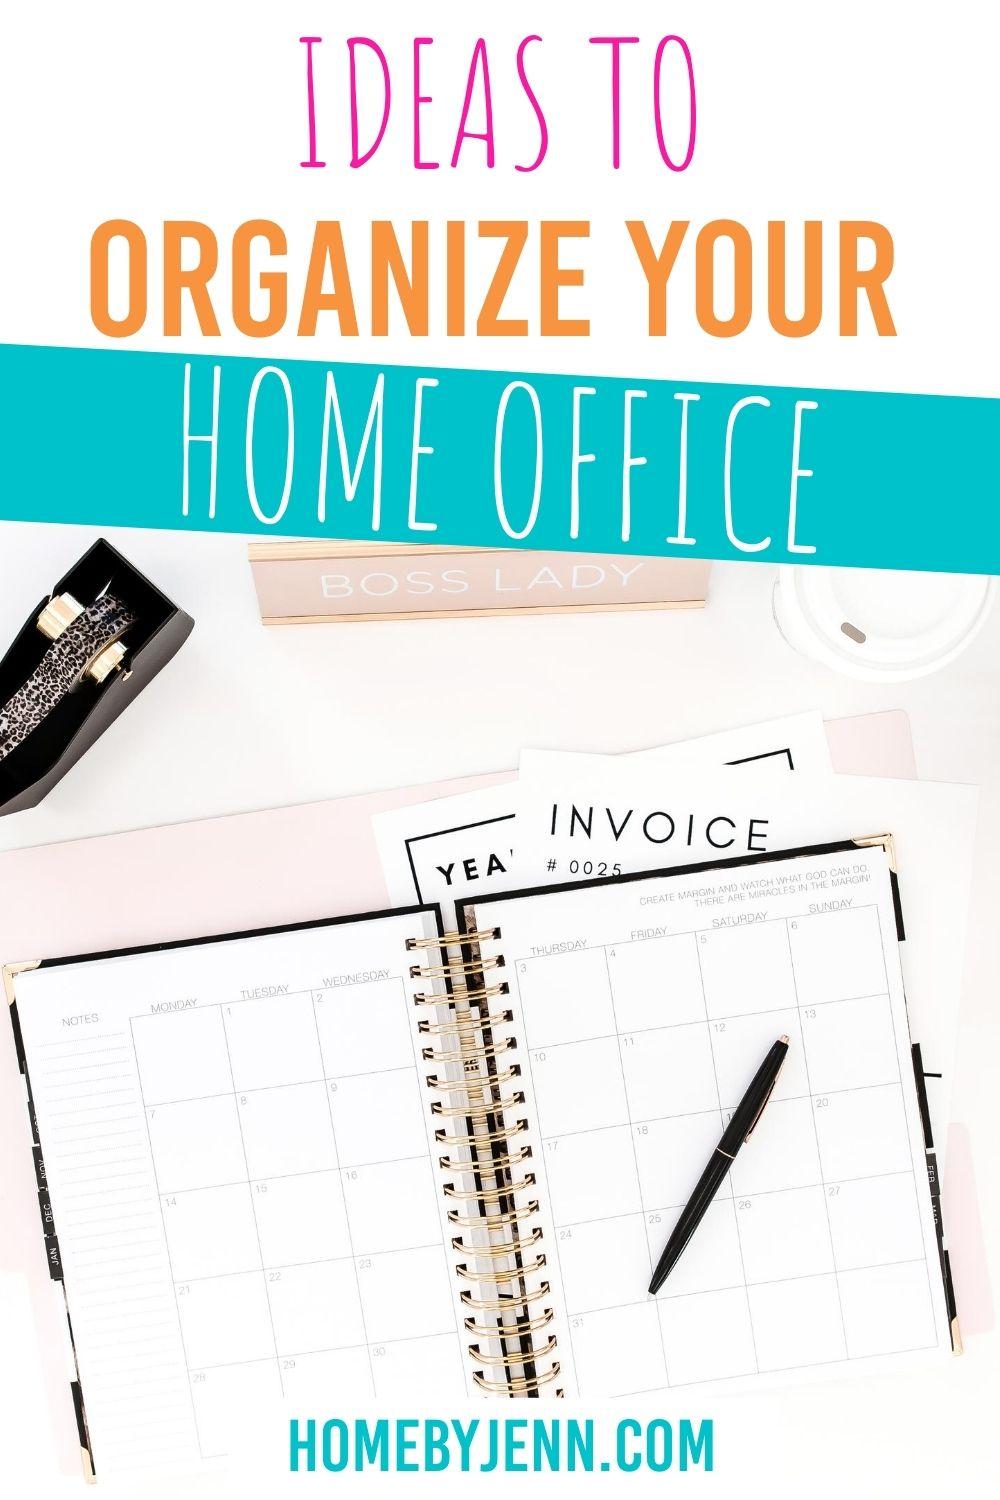 Enjoy an organized home office with these organizing ideas. These amazing home office organizing ideas will transform any home office into a place that is functional and beautiful. #organizing #organizingideas #homeoffice #office #homeofficeorganizingideas via @homebyjenn